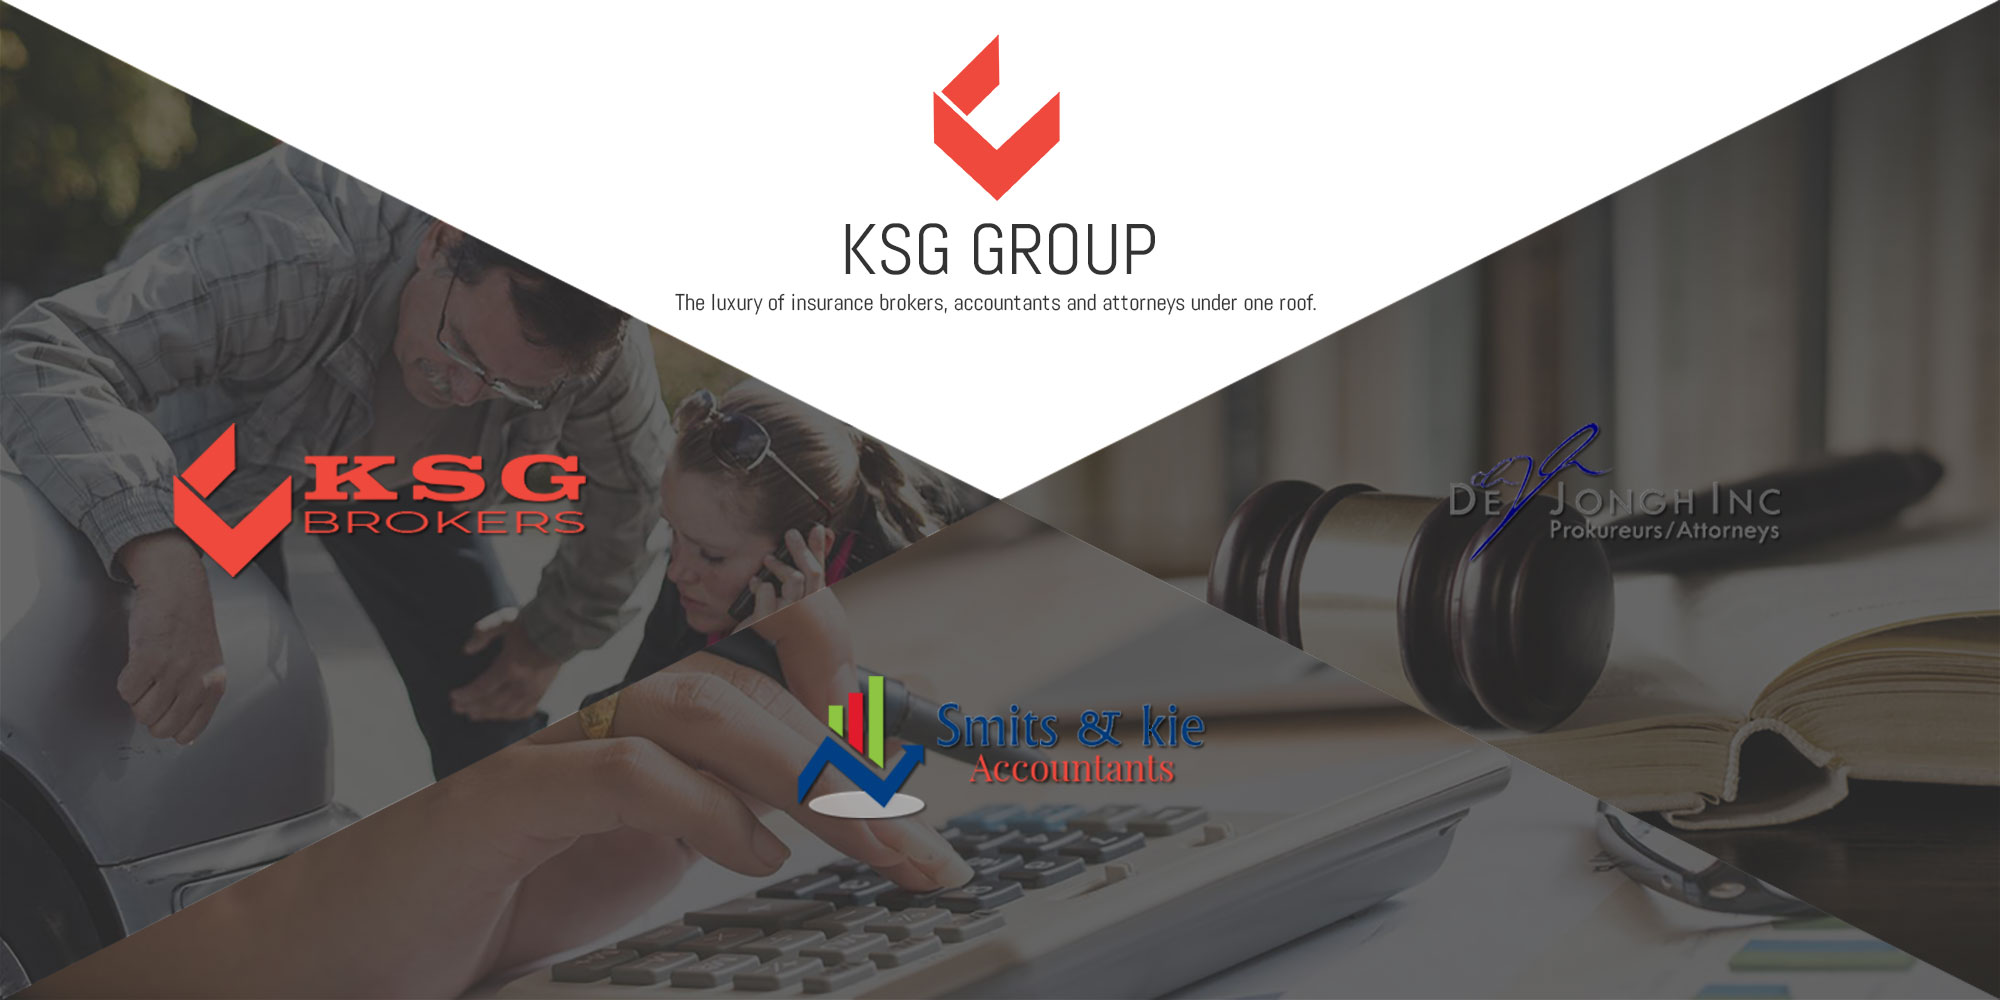 KSG Group | Insurance Brokers, Accountants & Attorneys in Upington